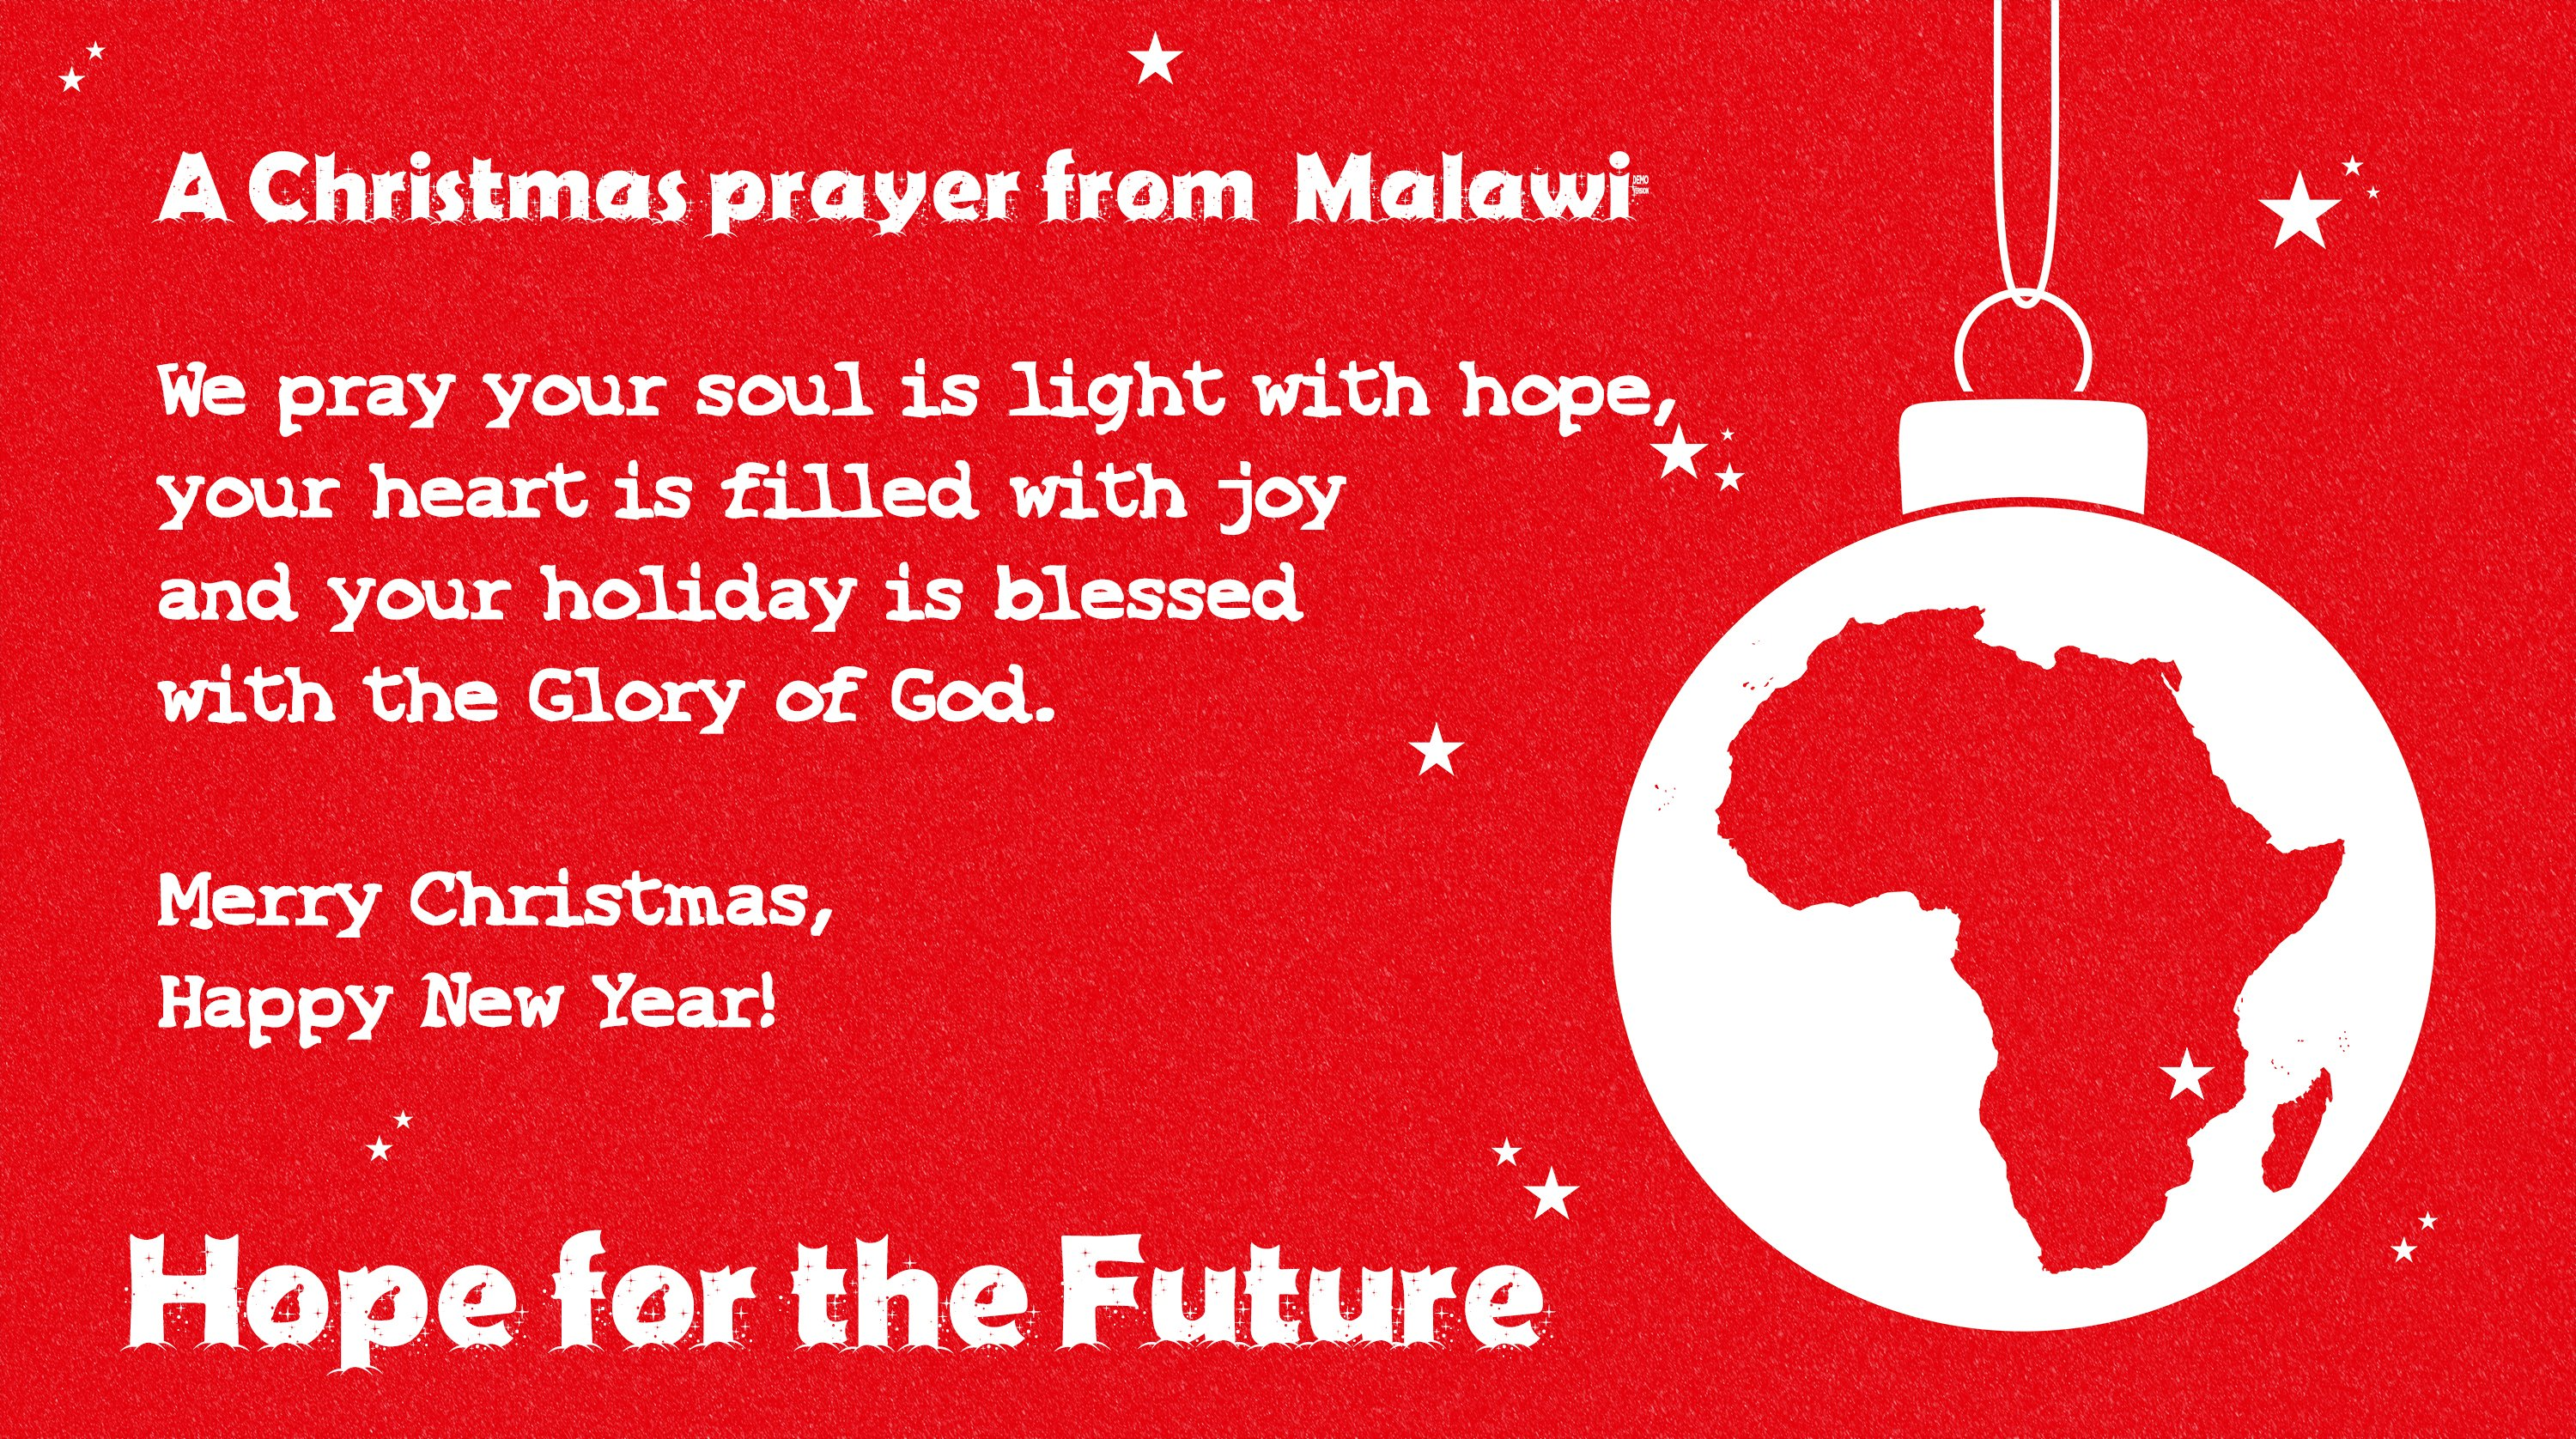 Christmas 2016 from Malawi